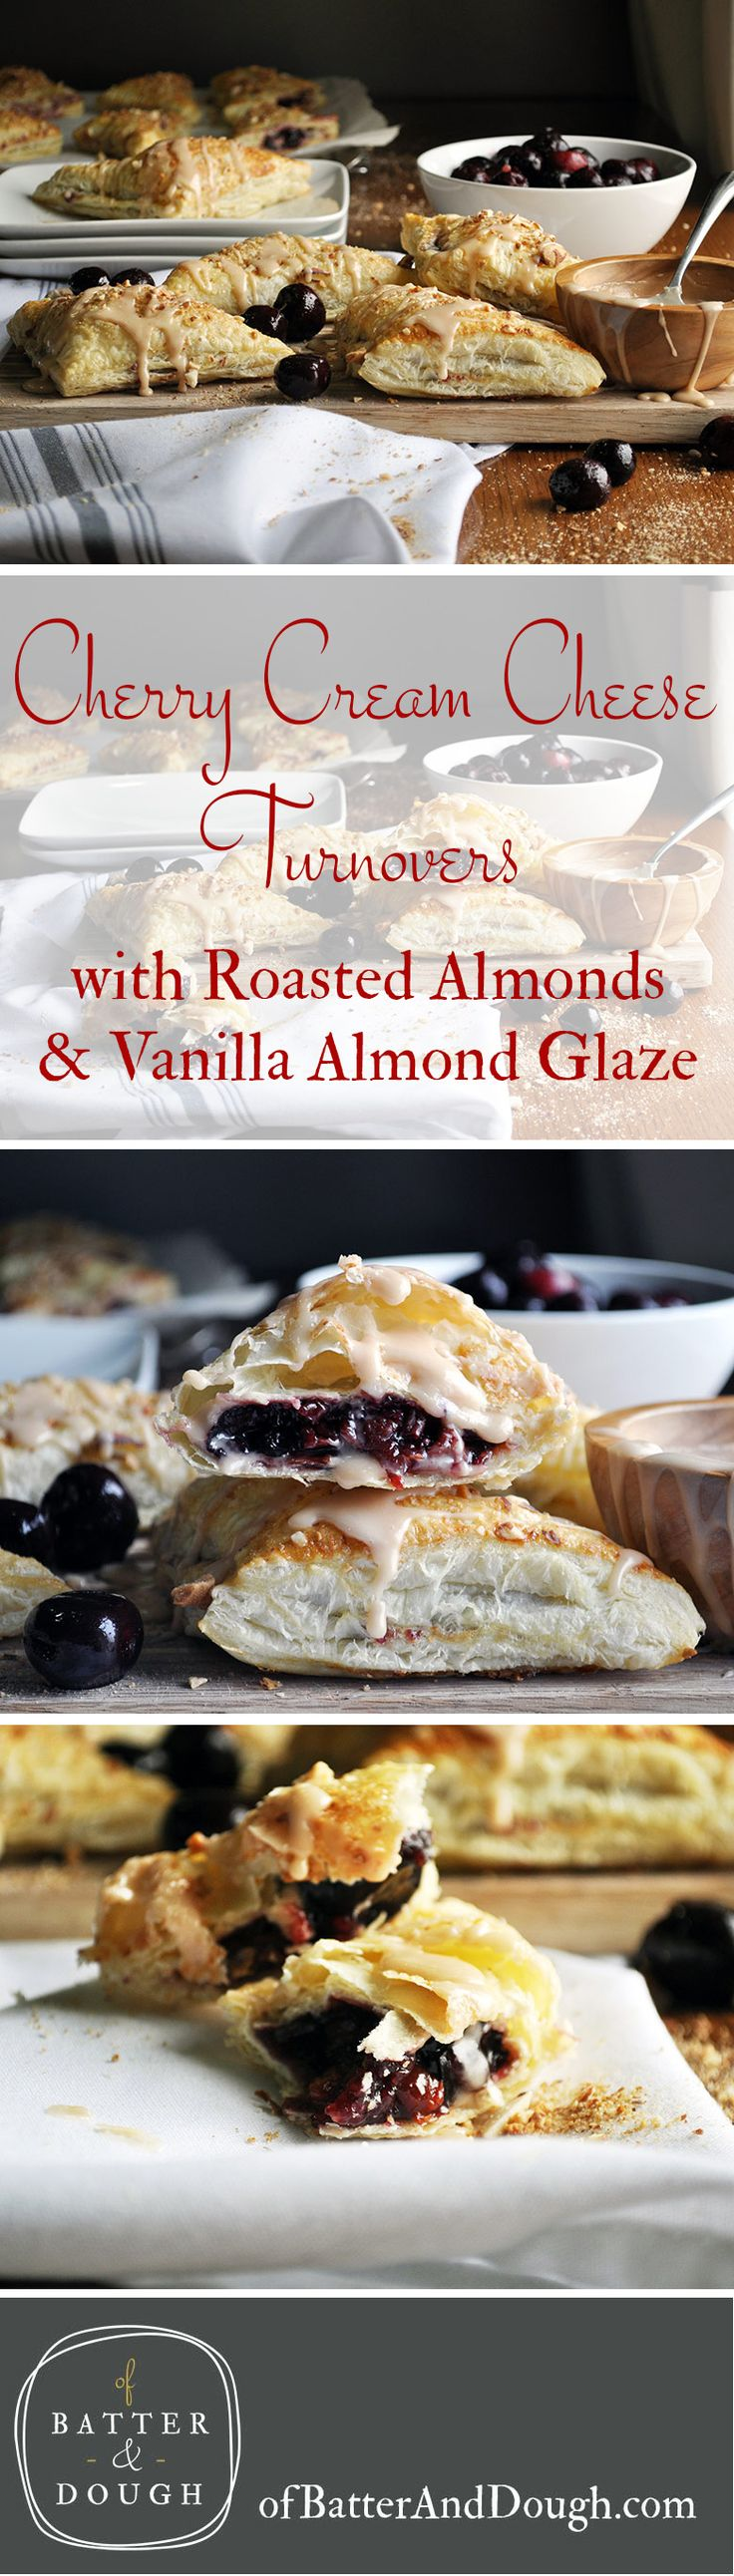 The best desserts images on pinterest desserts sweet recipes